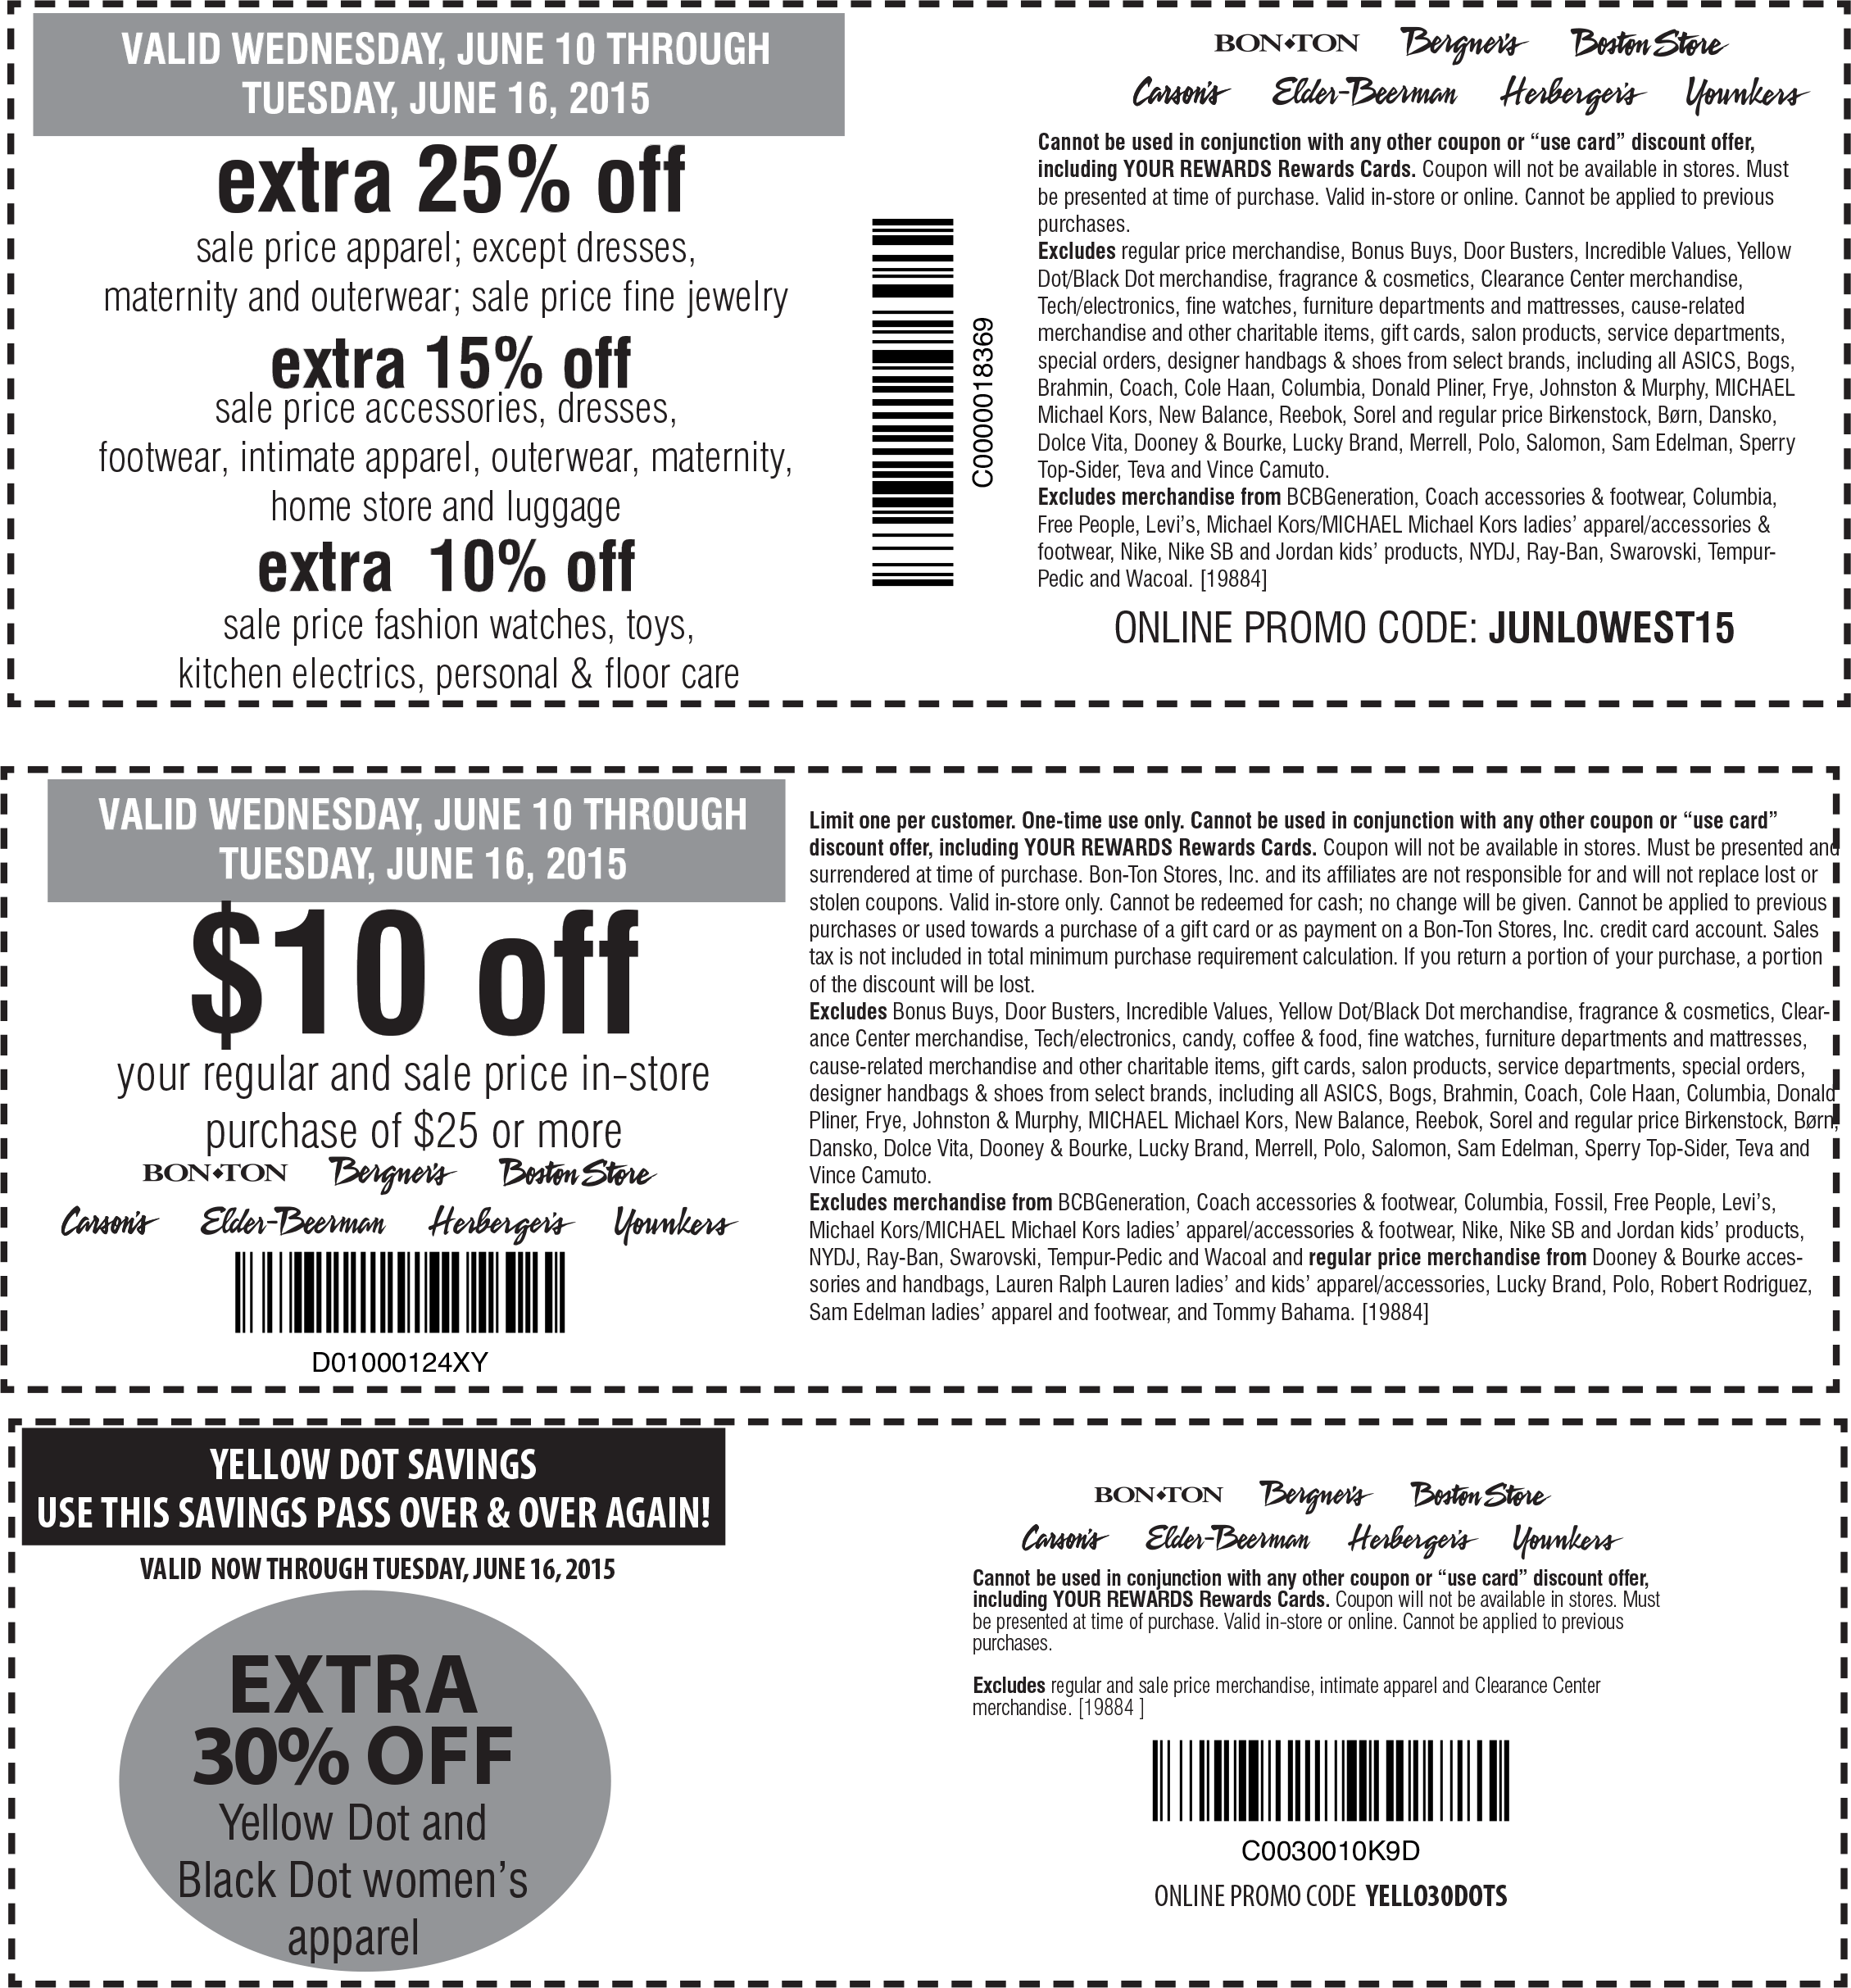 Carsons Coupon May 2017 Extra 25% off & more at Carsons, Bon Ton & sister stores, or online via promo code JUNLOWEST15